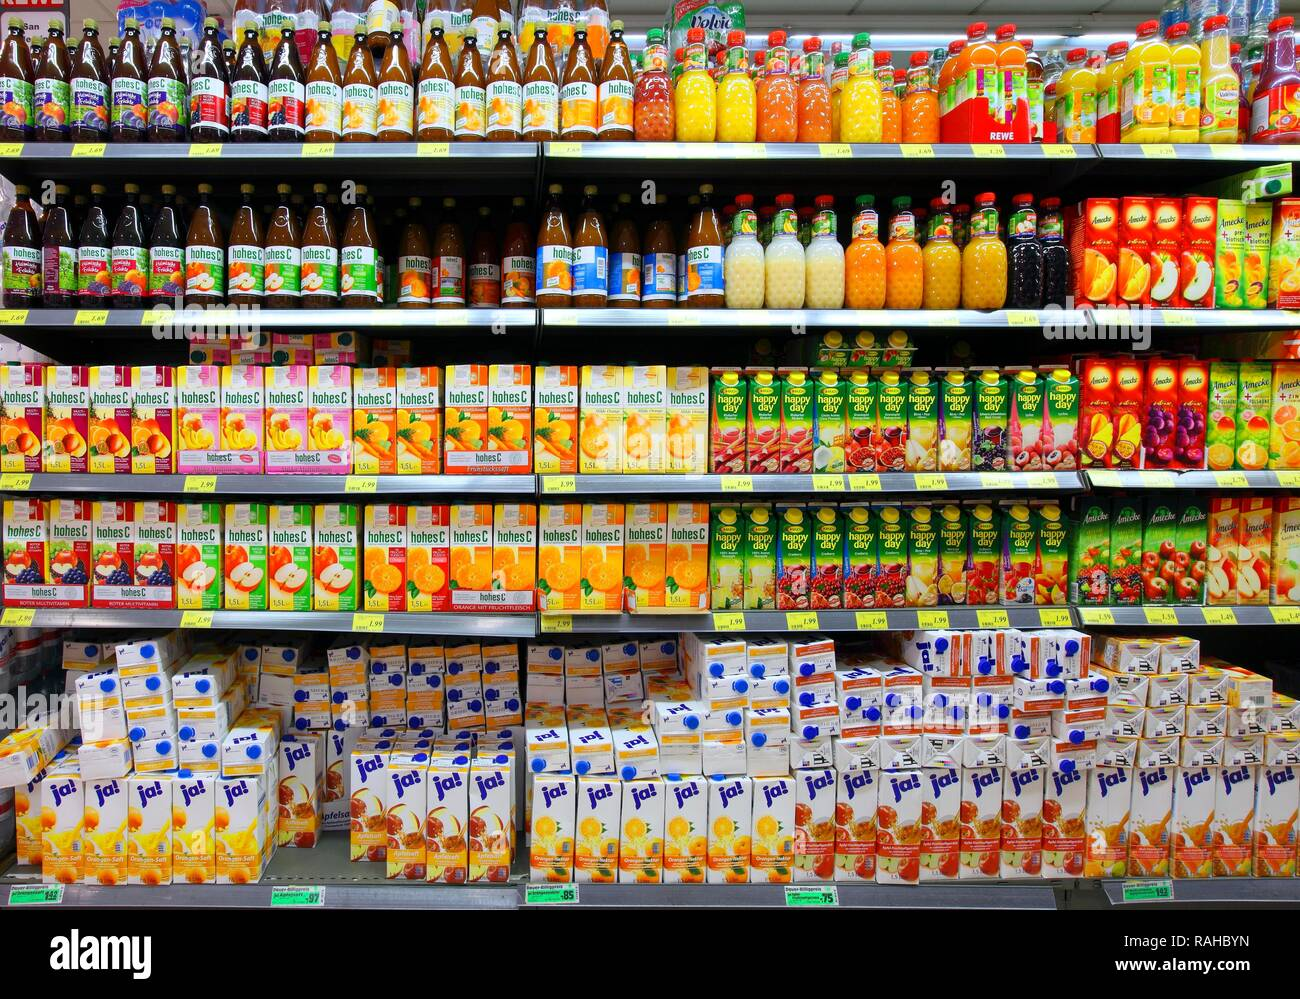 Shelves With Juice In Bottles And In Tetra Paks, Self